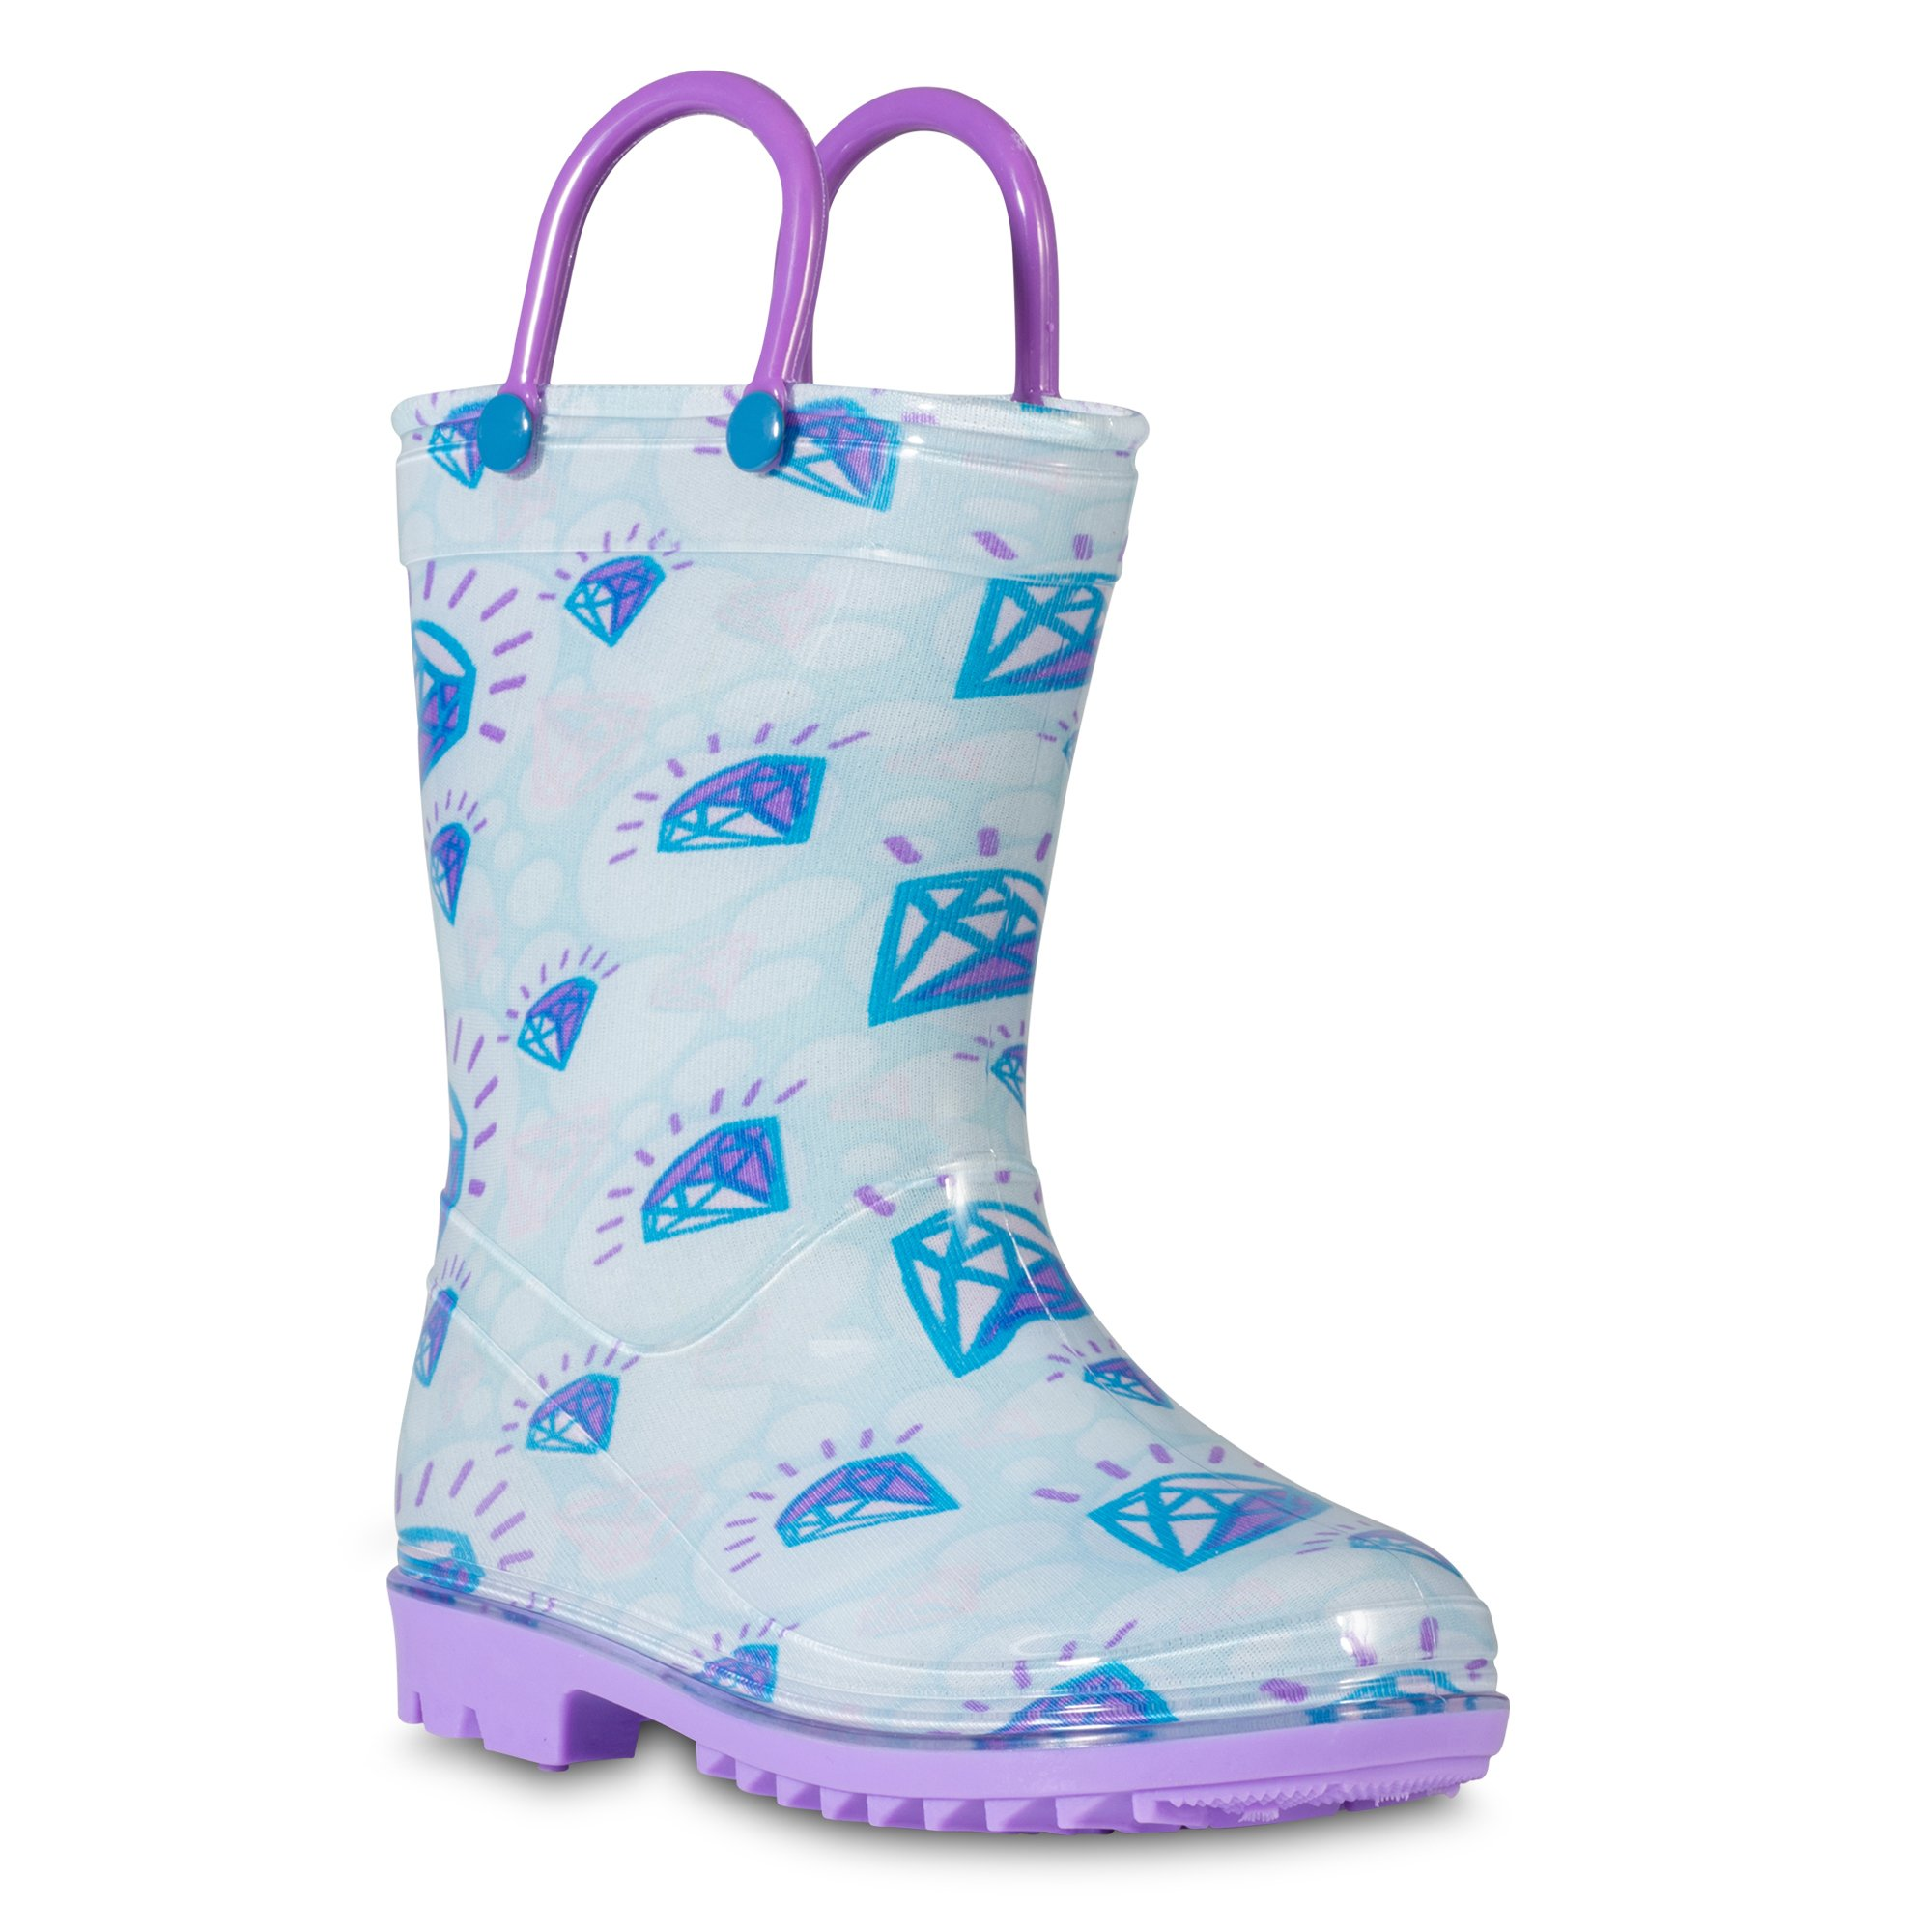 Zoogs Kids Rainboots, Waterproof, Pull Handles, Fun Prints, Anti-Slip